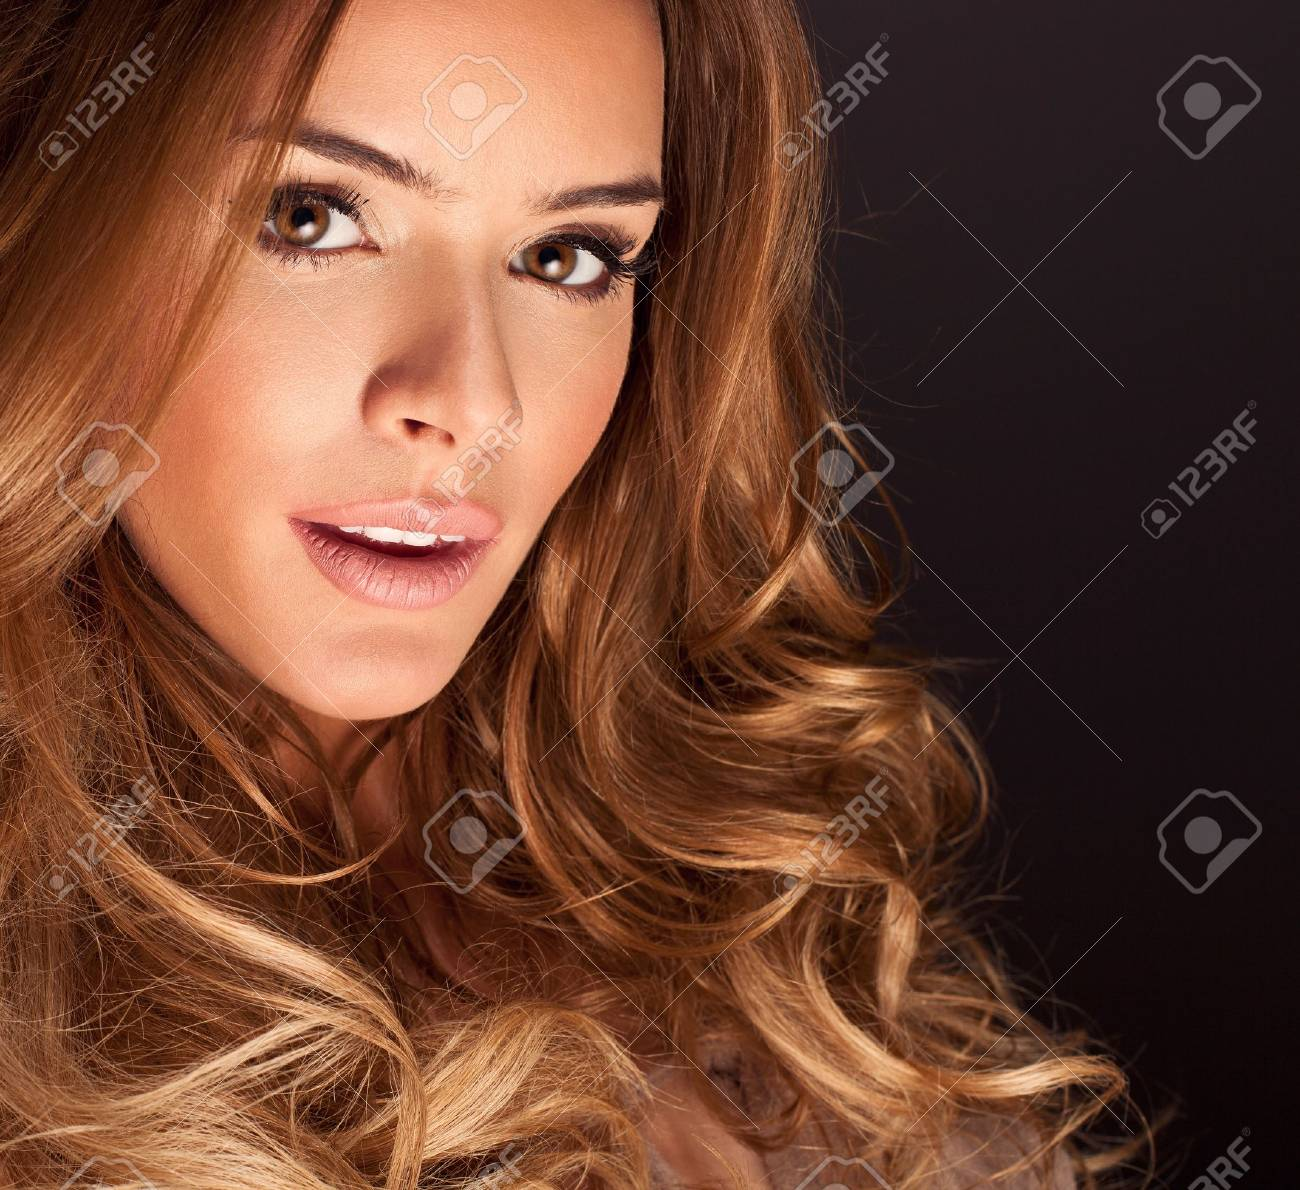 Portrait of a young woman with beautiful hair and eyes Stock Photo - 19532615